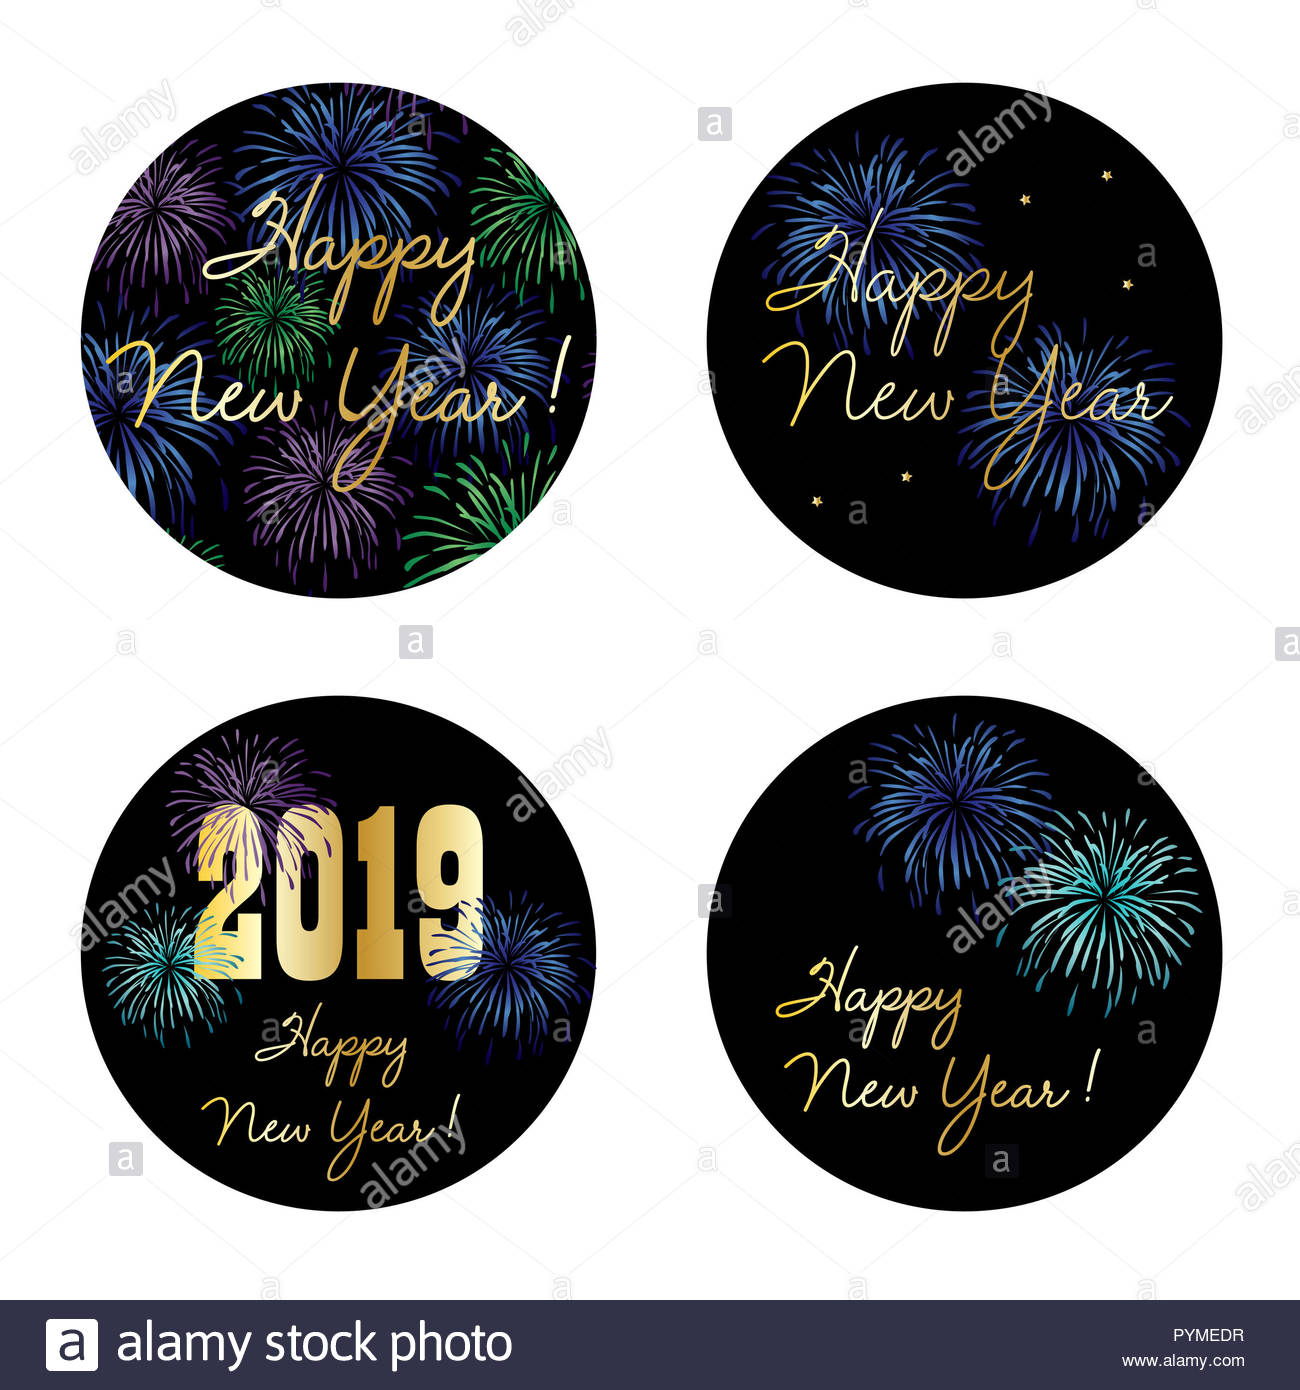 new years eve 2019 circle vector graphics with fireworks - Stock Image